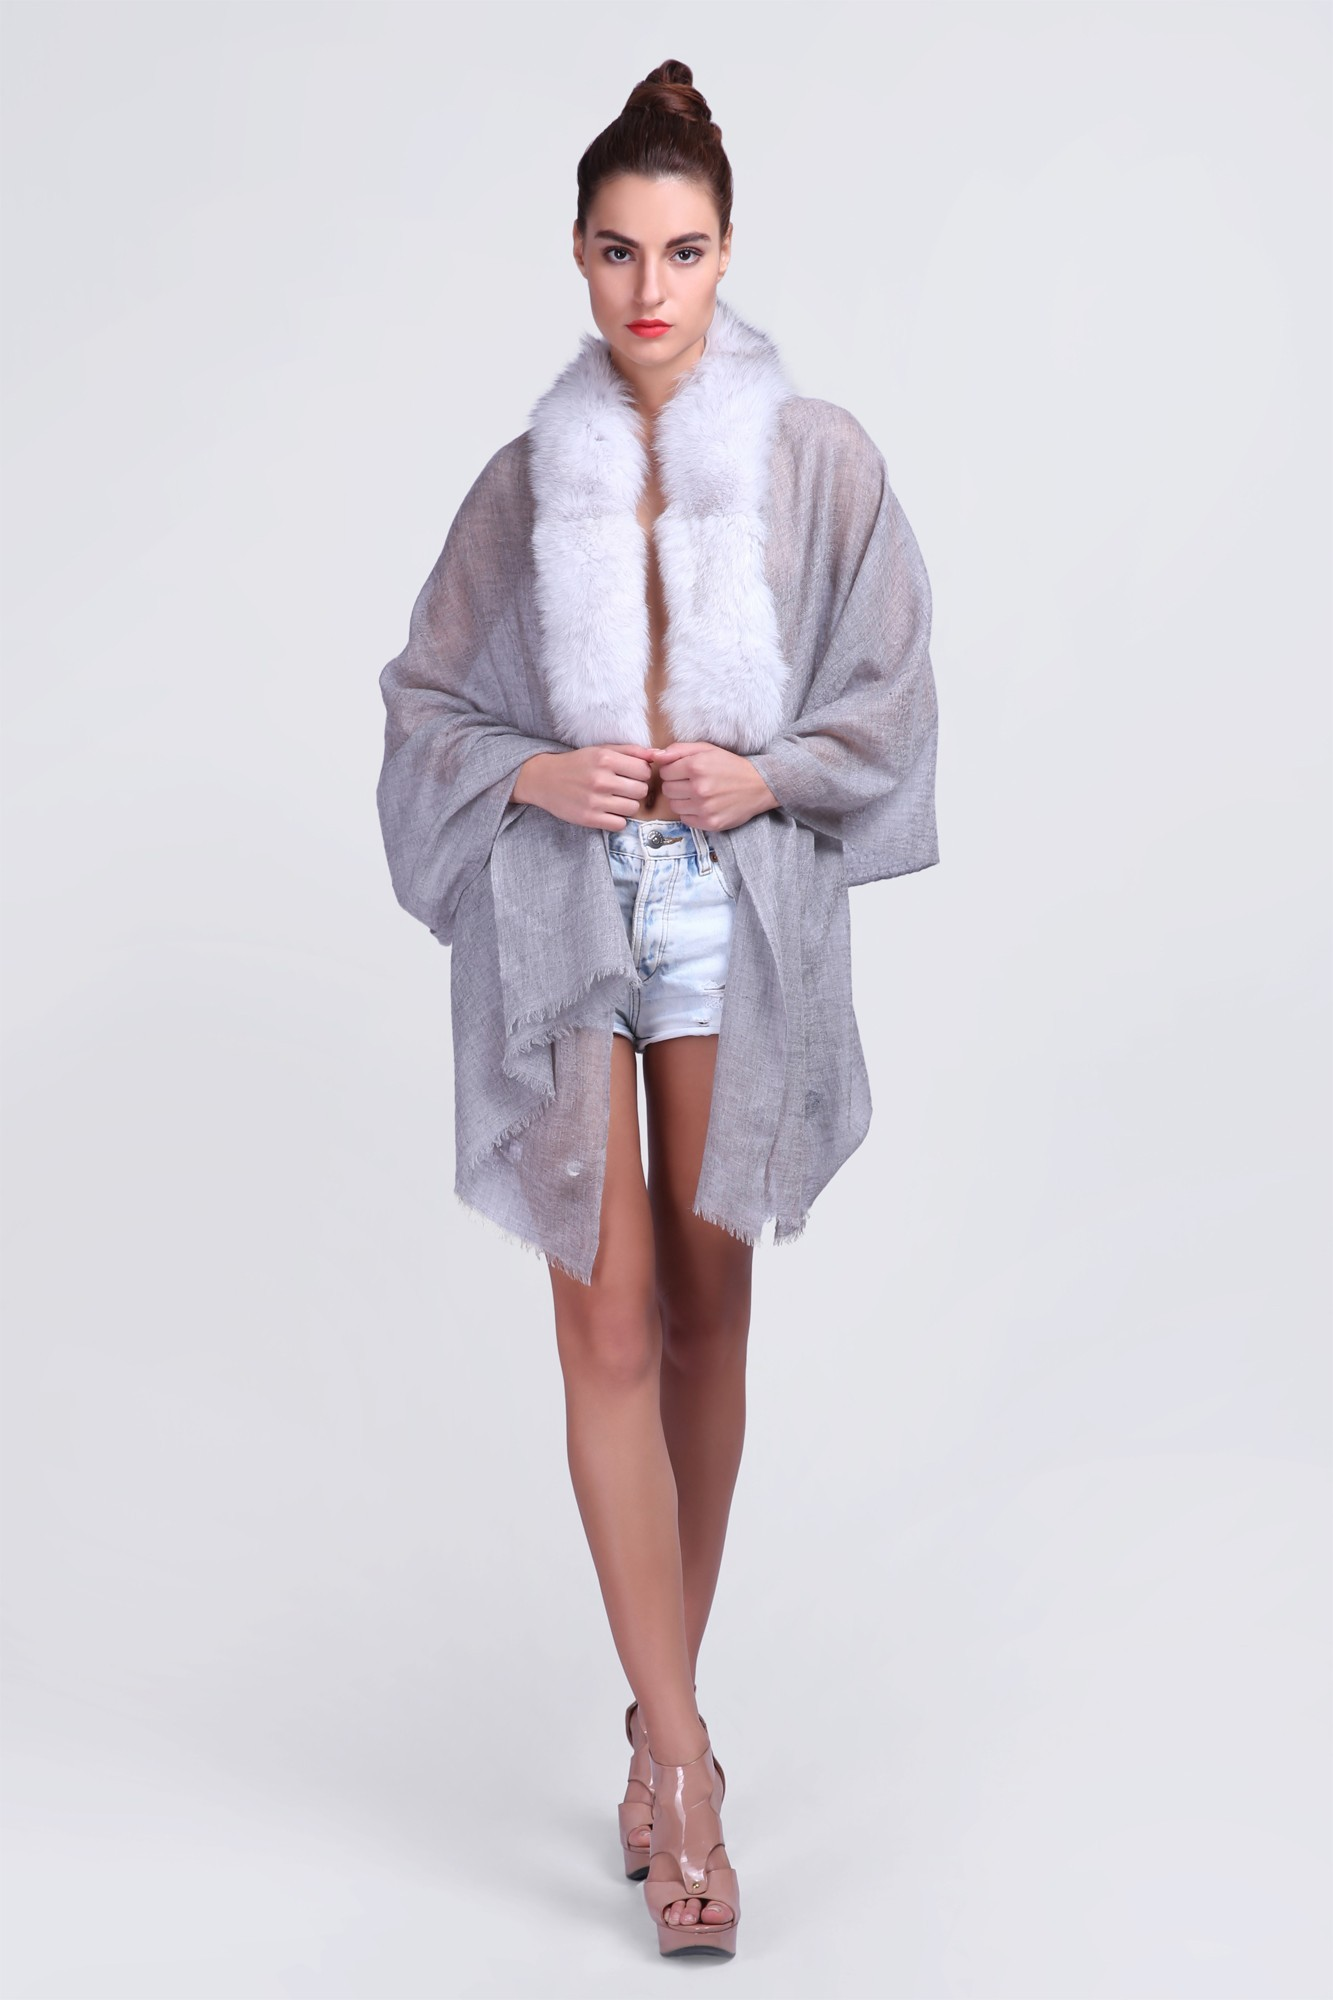 Cashmere Luxury Scarves with Fur - VS 12368A Lt.Grey Cashmere